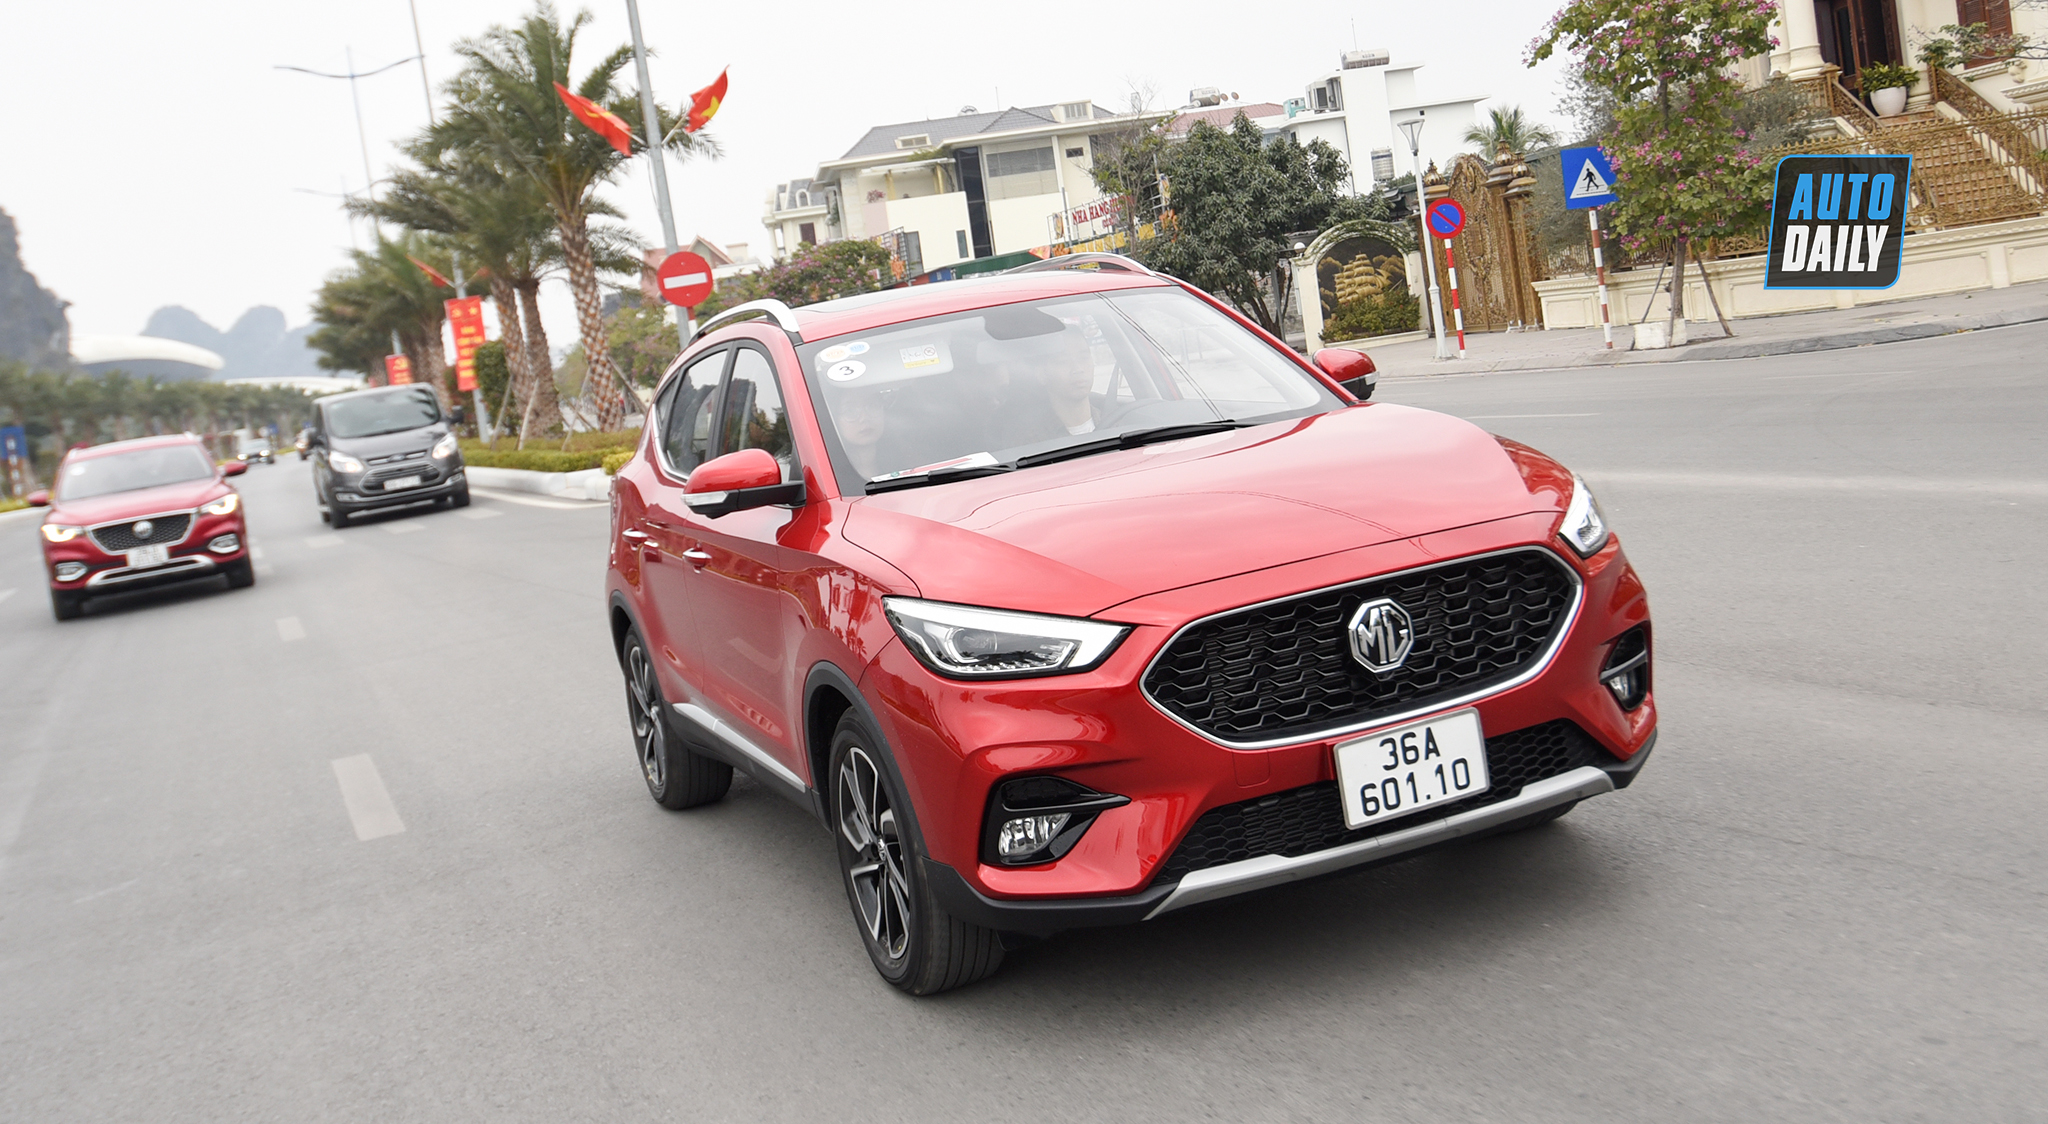 MG ZS 2021 evaluation: A reasonable choice of 2021 VND 600 million price range